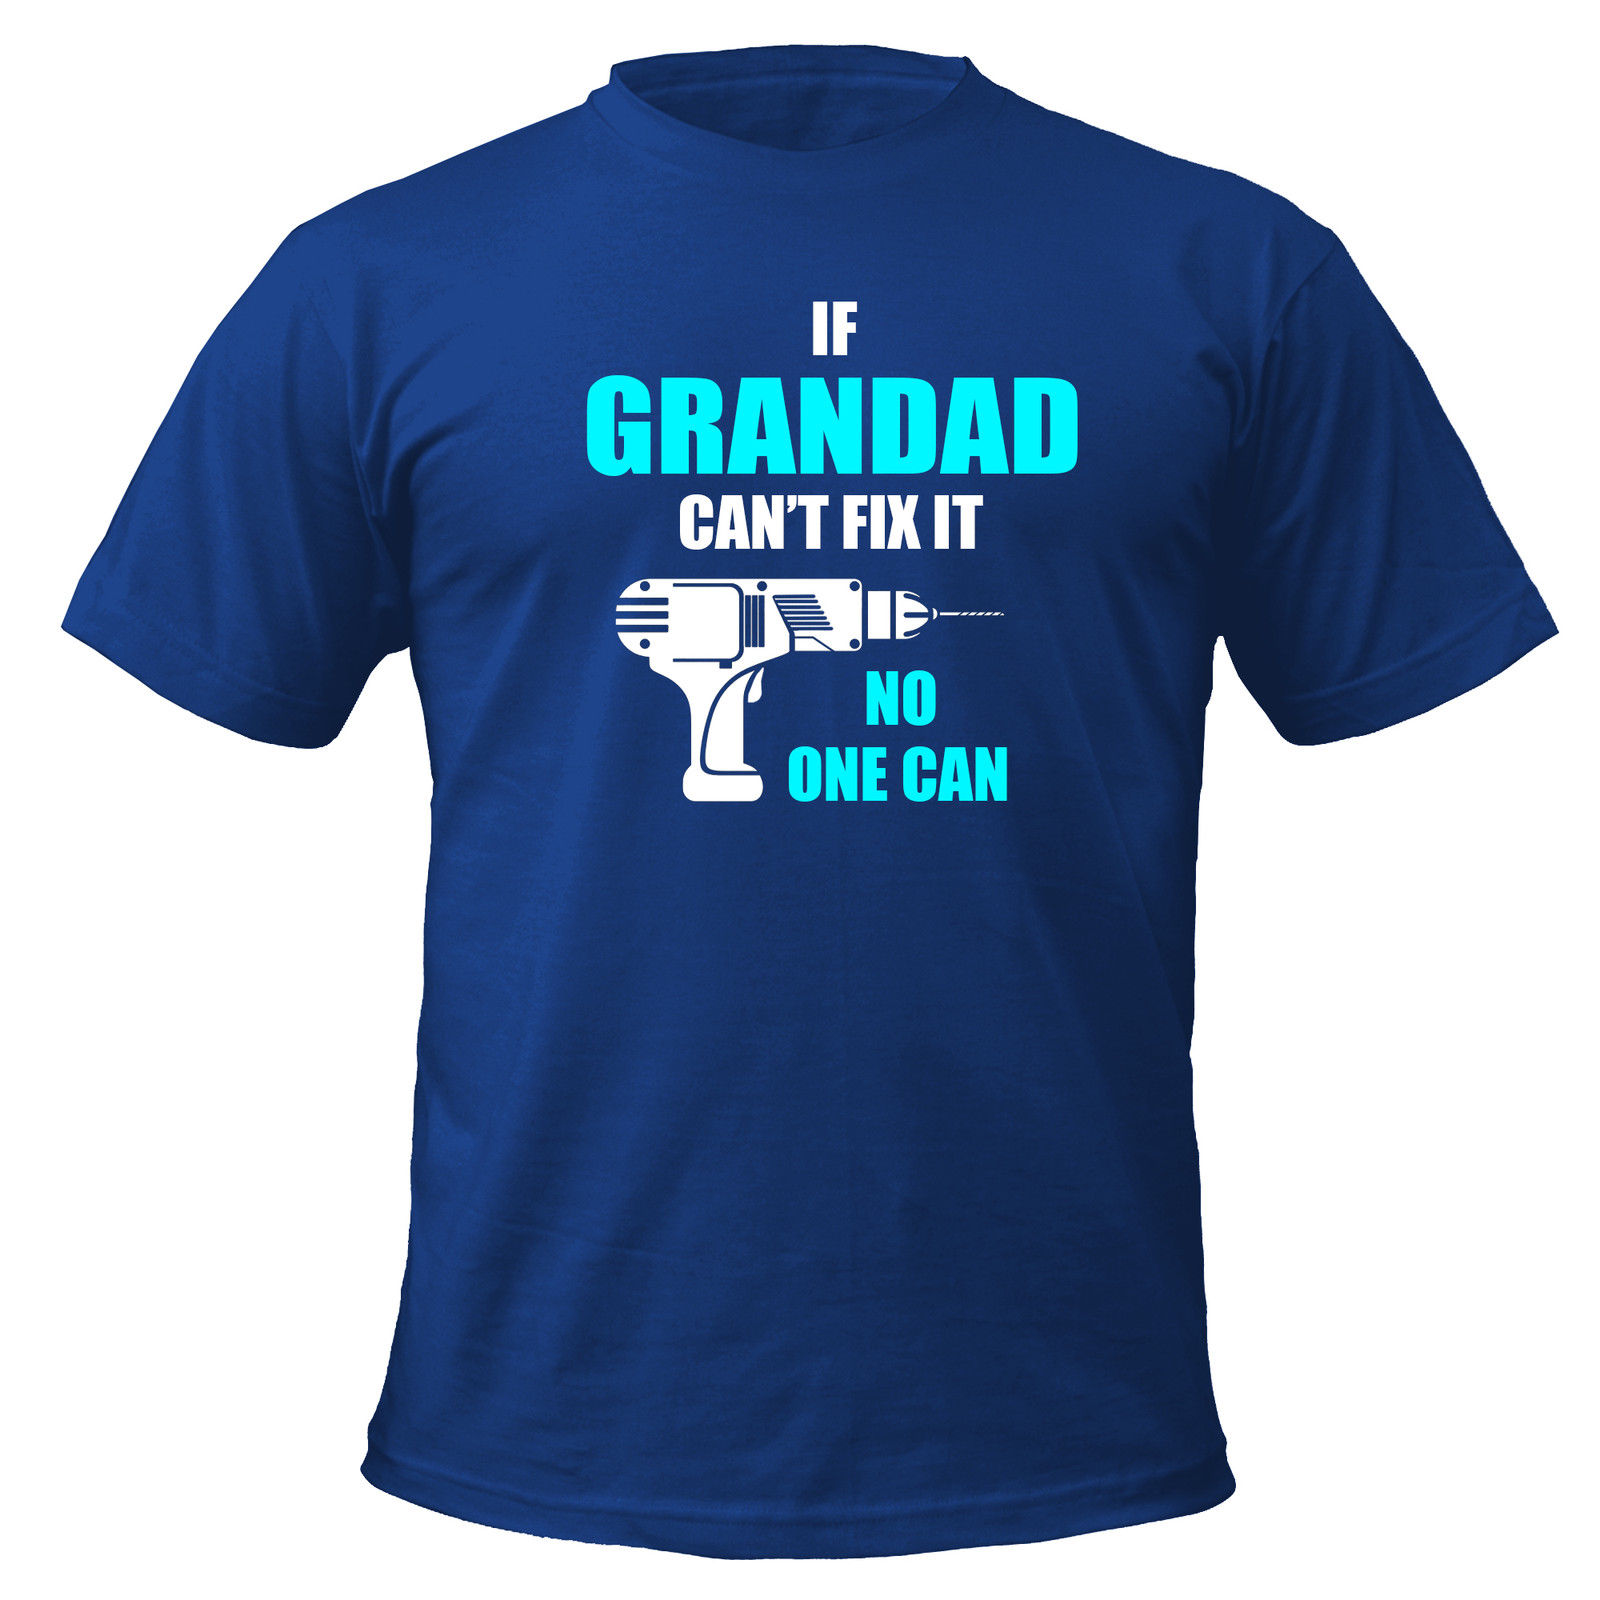 If Grandad Cant Fix It No One Can funny T-shirt fathers day gift, dad,grandpa T Shirt Men Tees Brand Clothing Funny